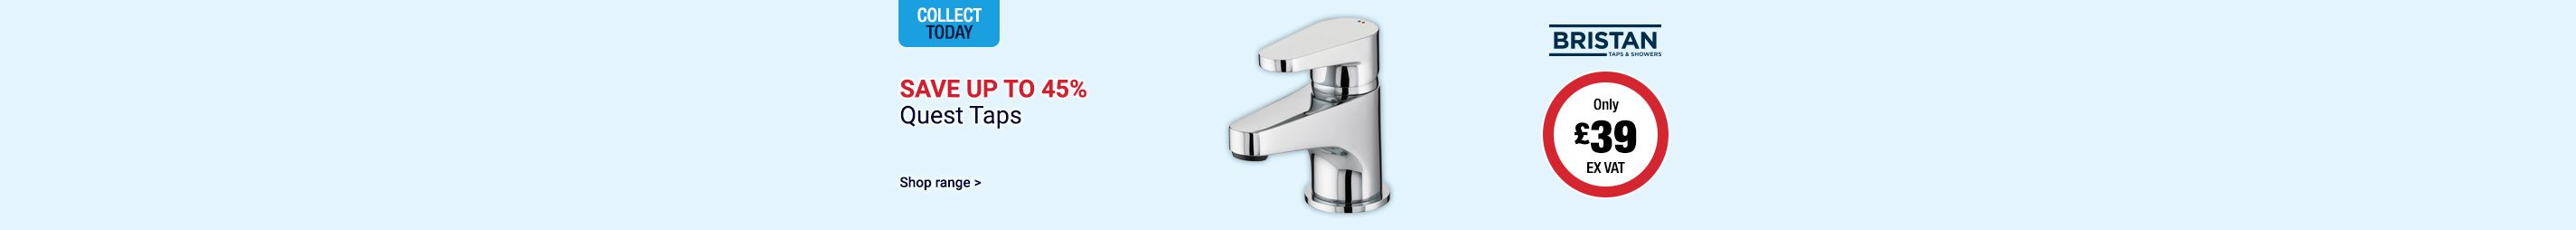 Save up to 45% on Bristan Quest Taps